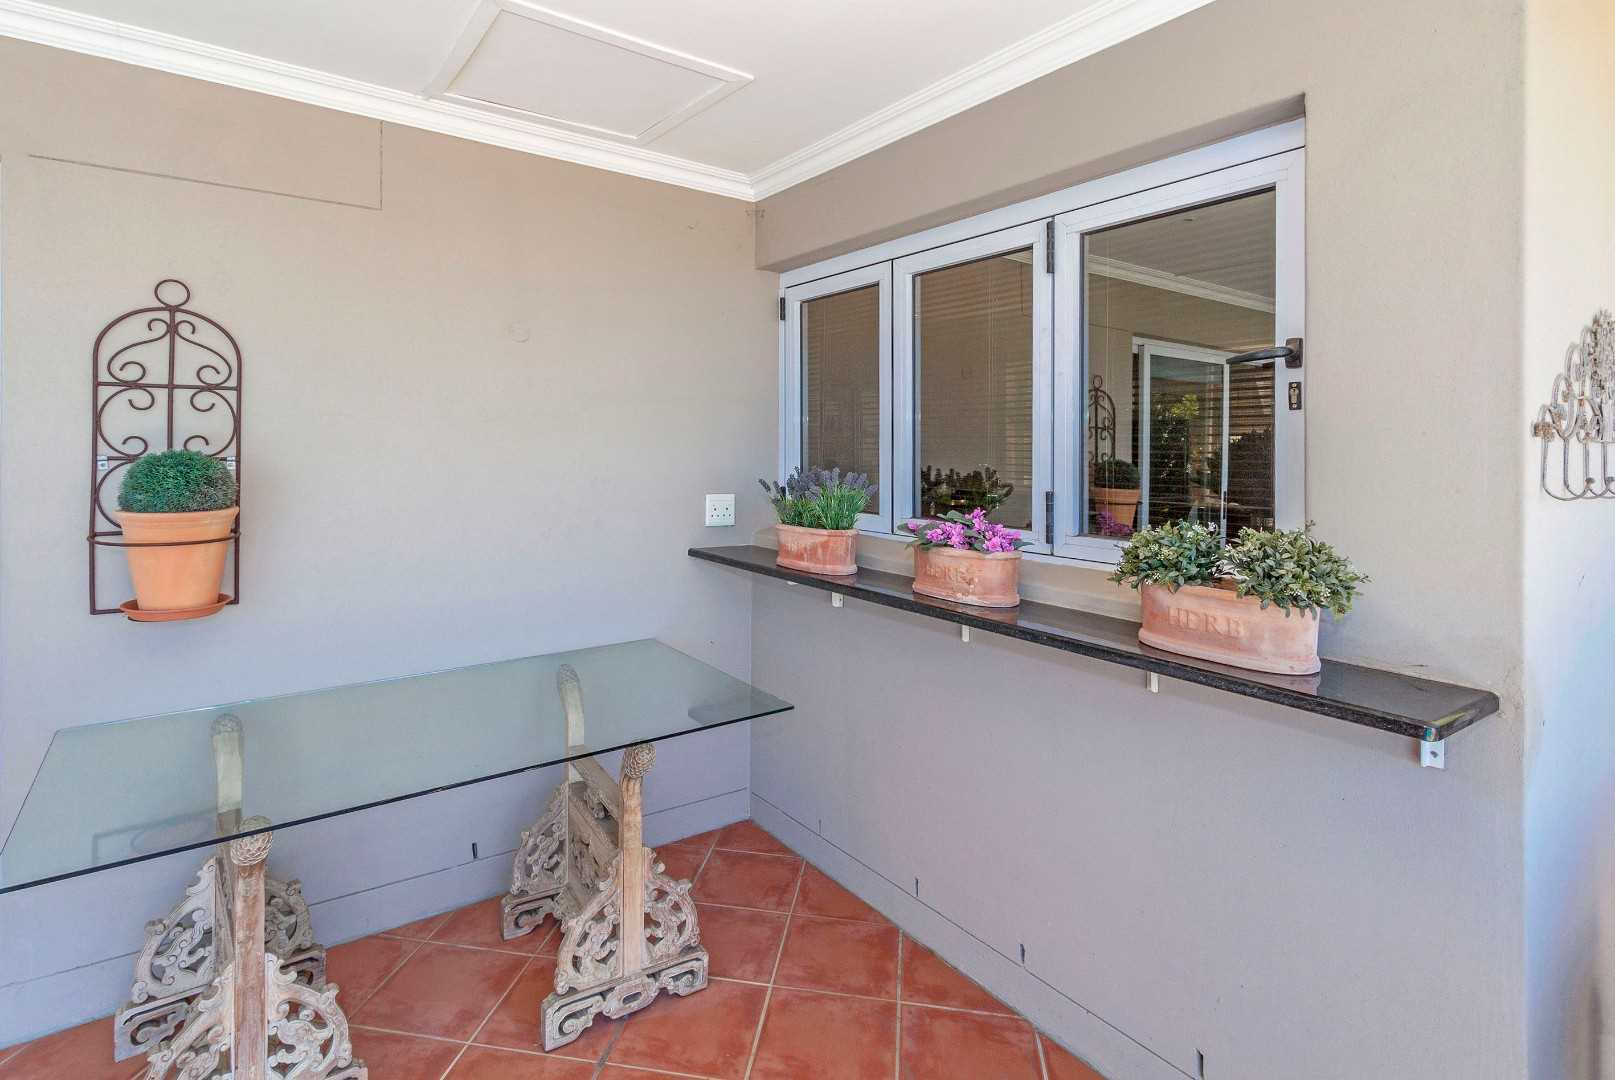 Patio outside kitchen, with stacking windows